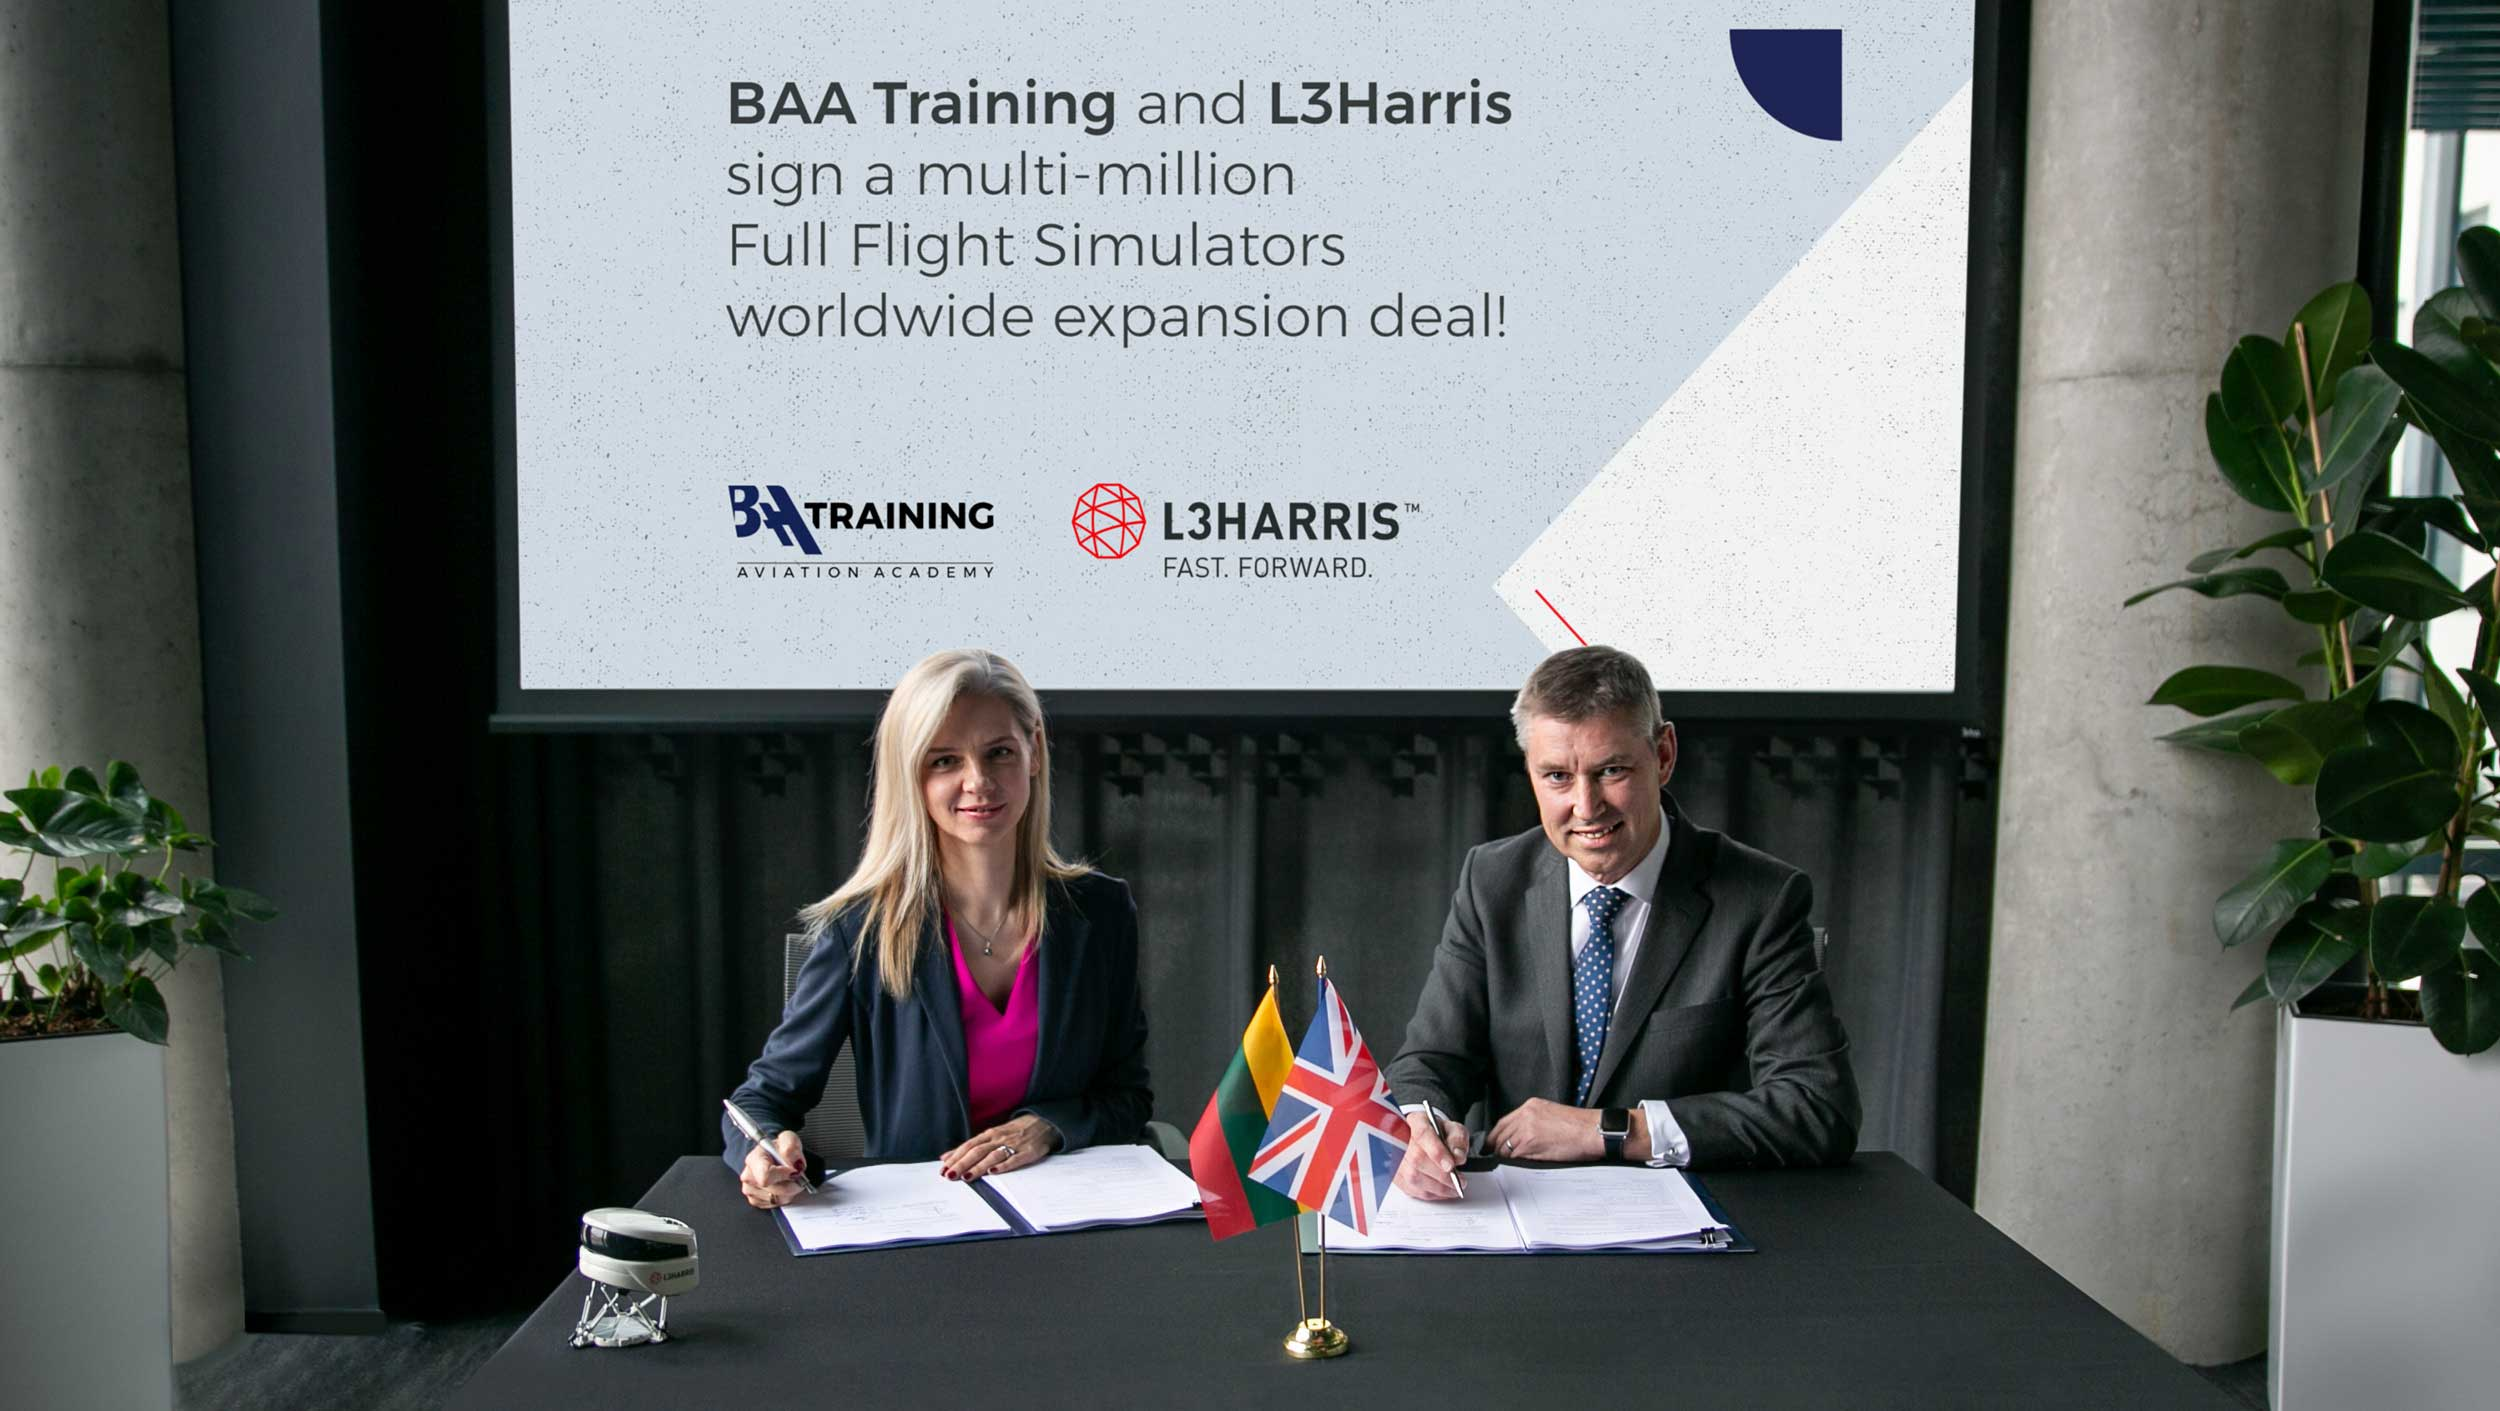 BAA Training L3Harris deal